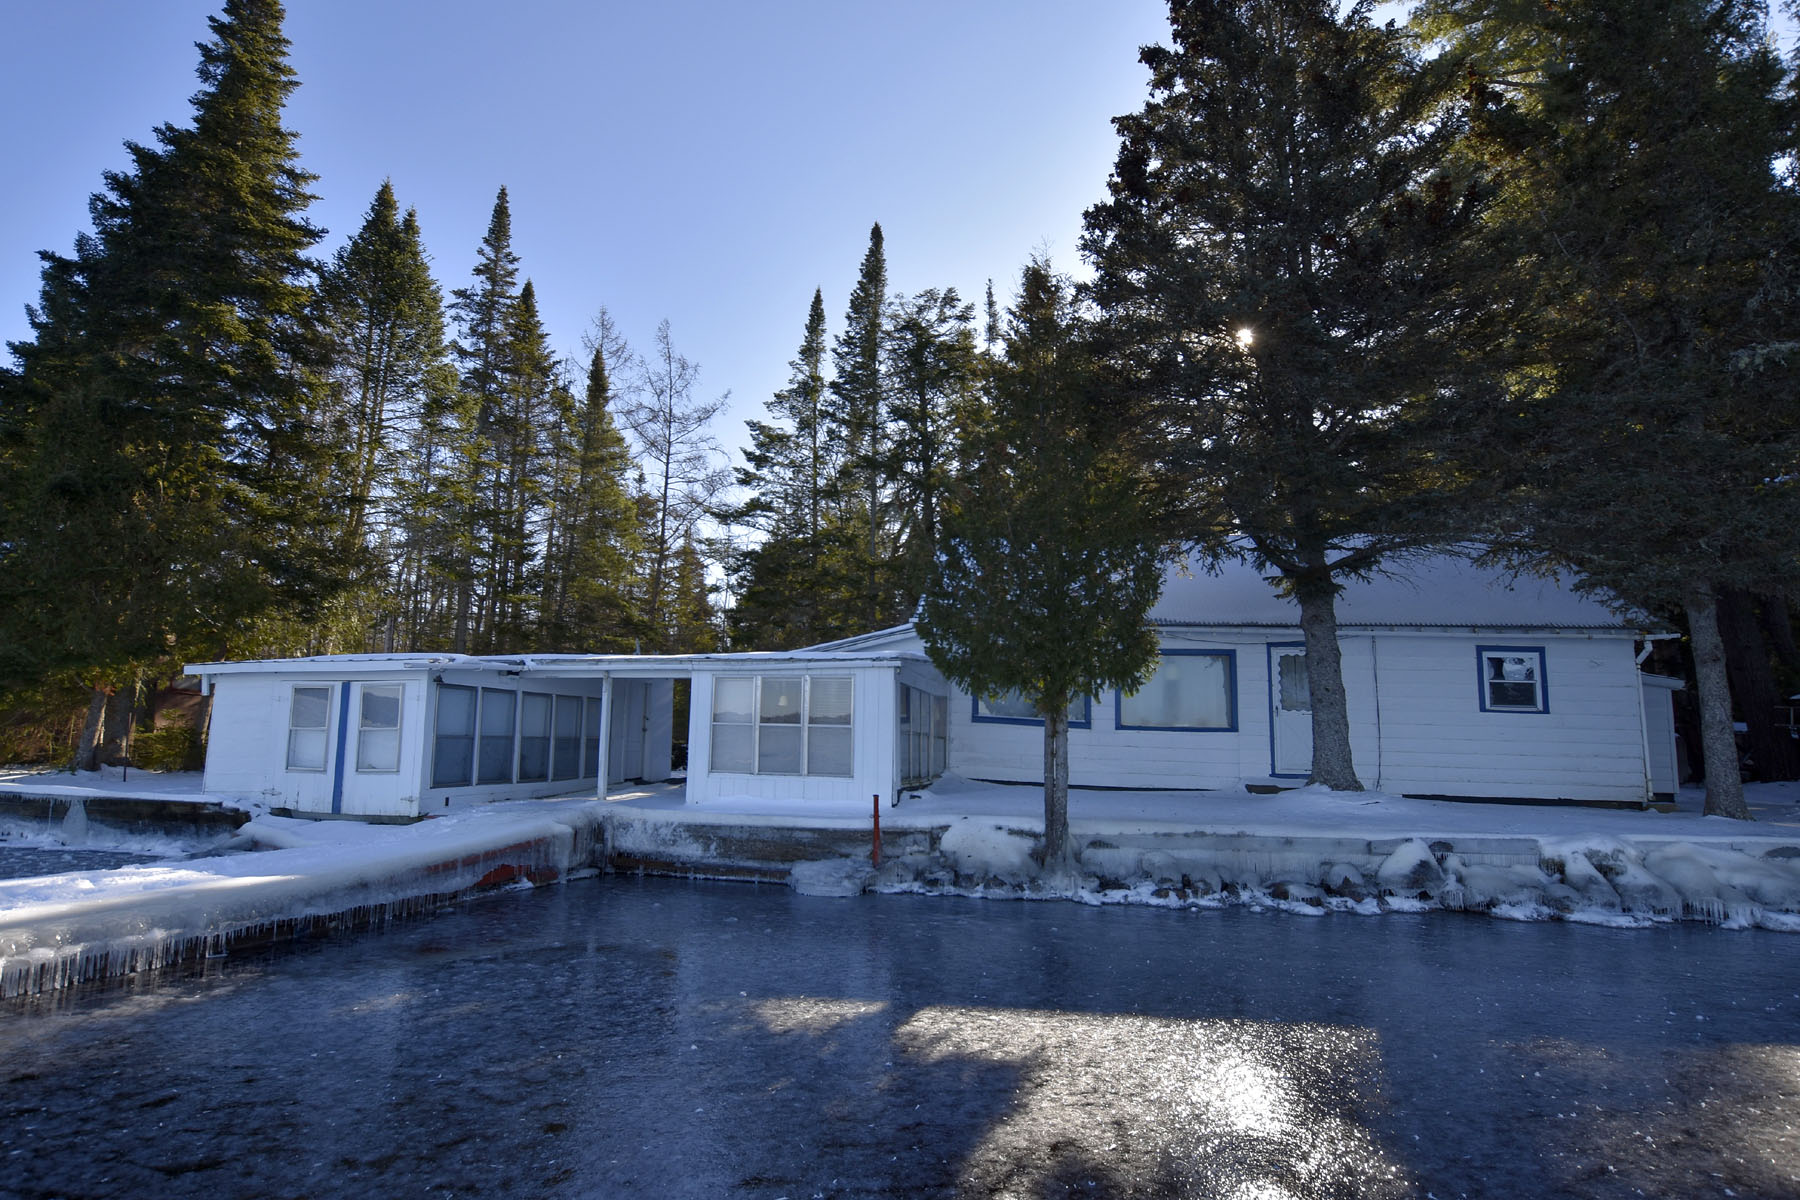 Single Family Homes for Sale at 159 Lakeshore Drive 159 Lakeshore Dr. Raquette Lake, New York 13436 United States